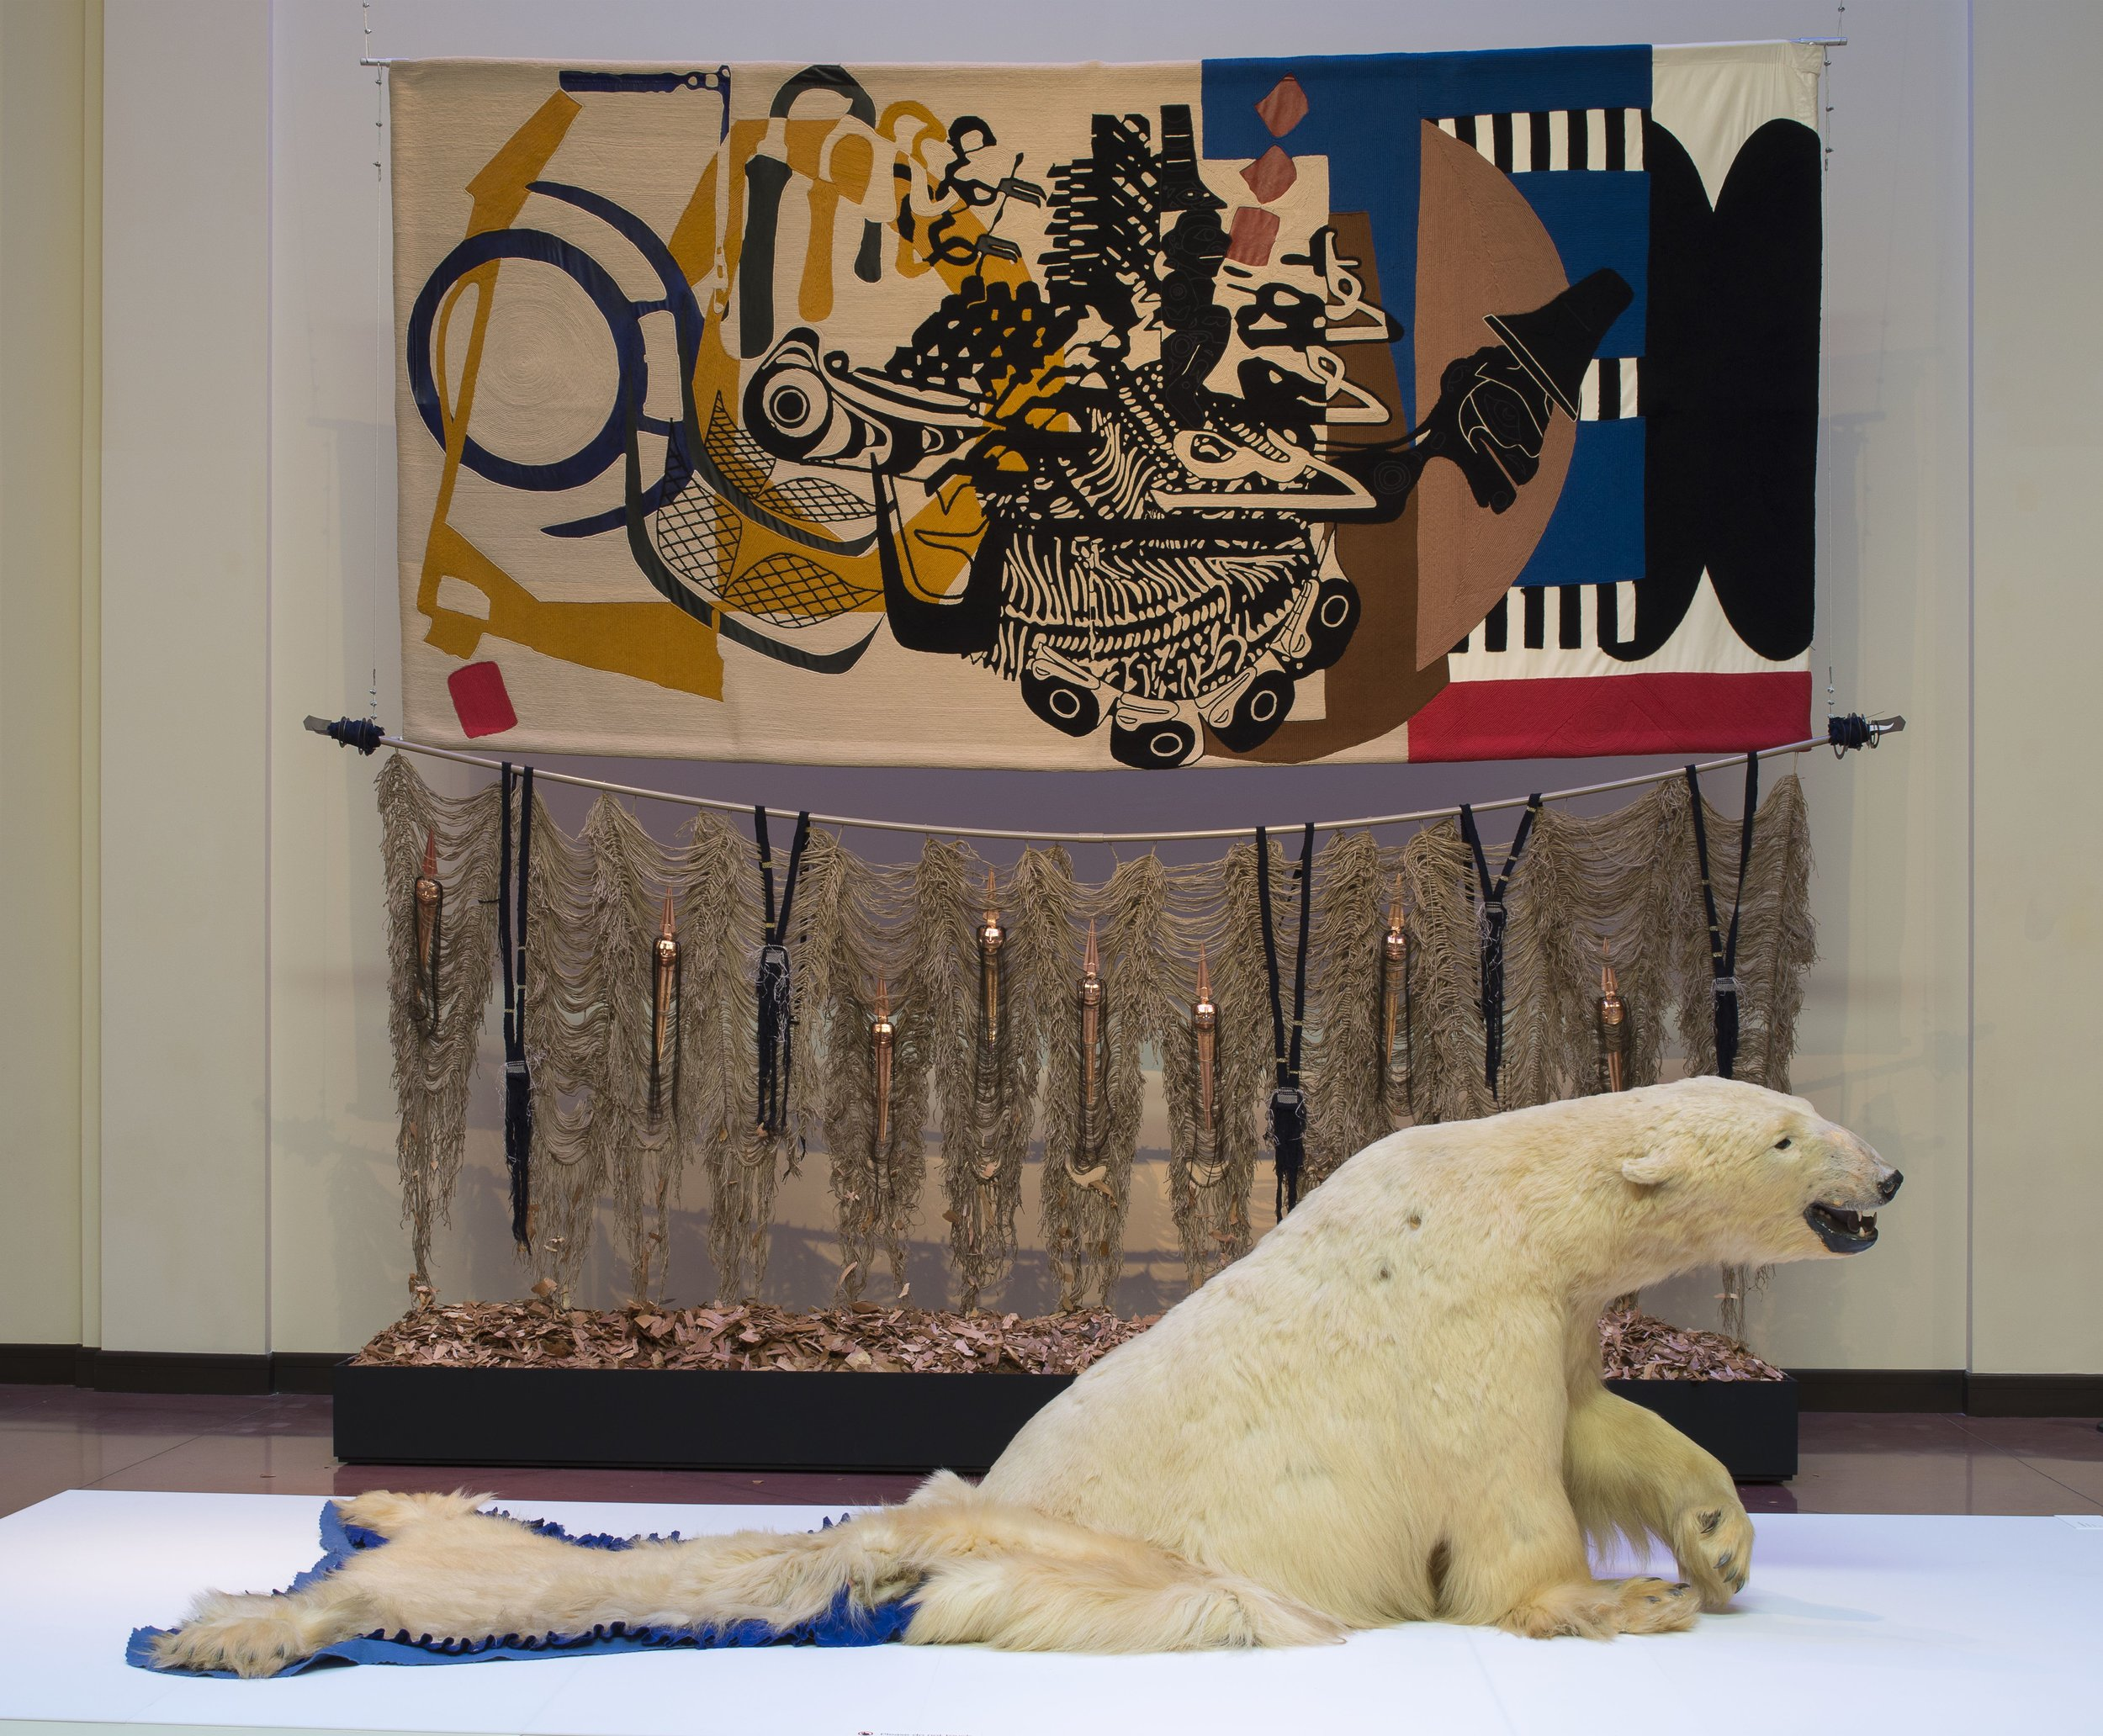 We Dreamt Deaf,  polar bear taxidermy, 2015 |  Axes in Polyrhuthm, When My Drums Come Knocking They Watch , wood, cotton, silk, jute, woodchips, collaboration with Nep Sidhu, 2018.